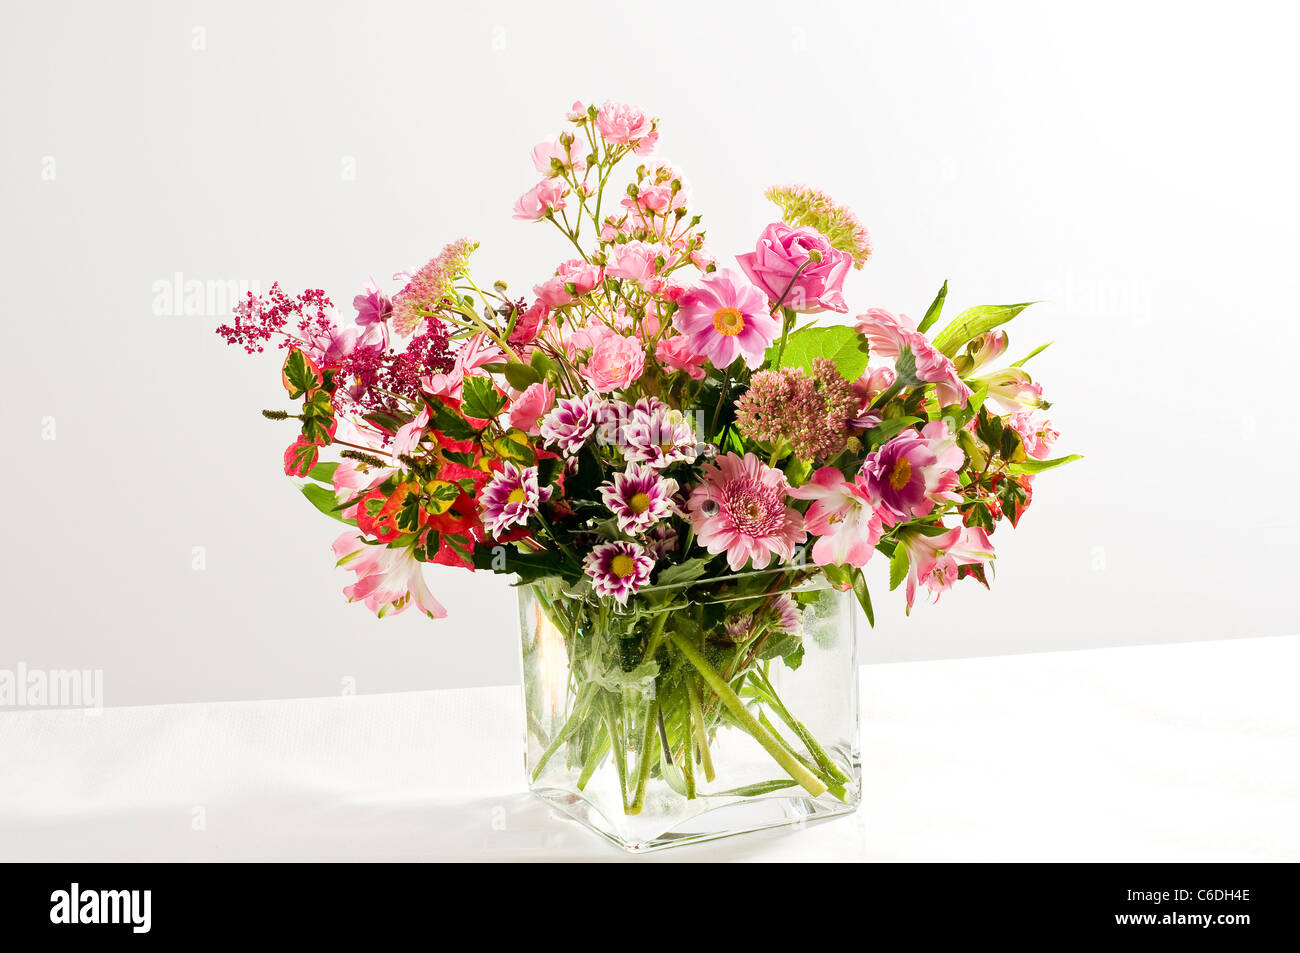 Pink Flower Bouquet On A White Background Stock Photo 38407502 Alamy